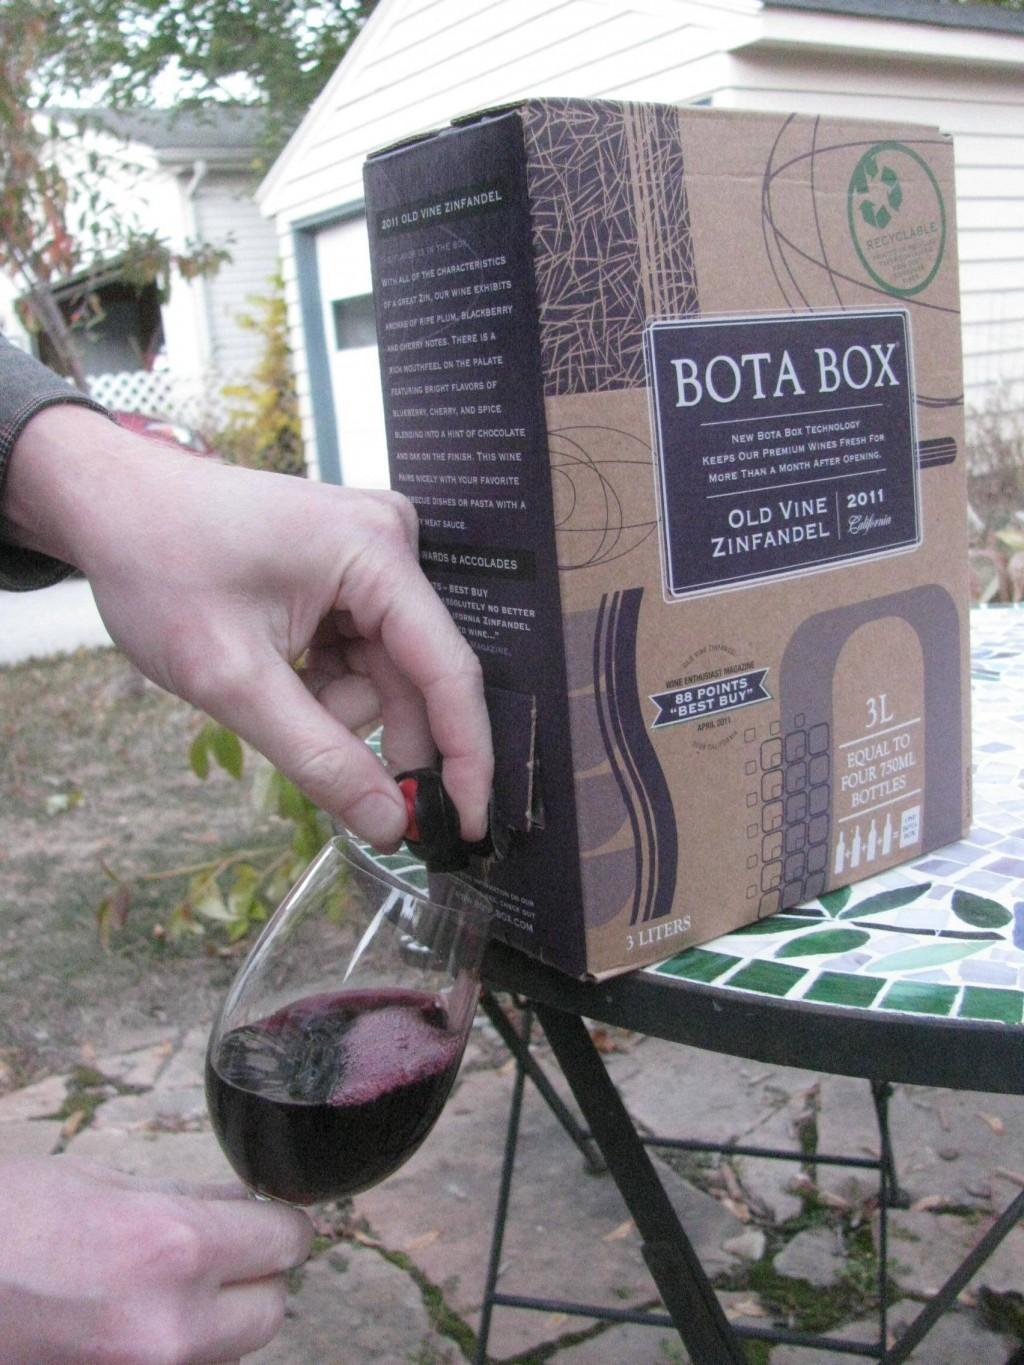 Salud! This Thanksgiving, go big and go home with box wine